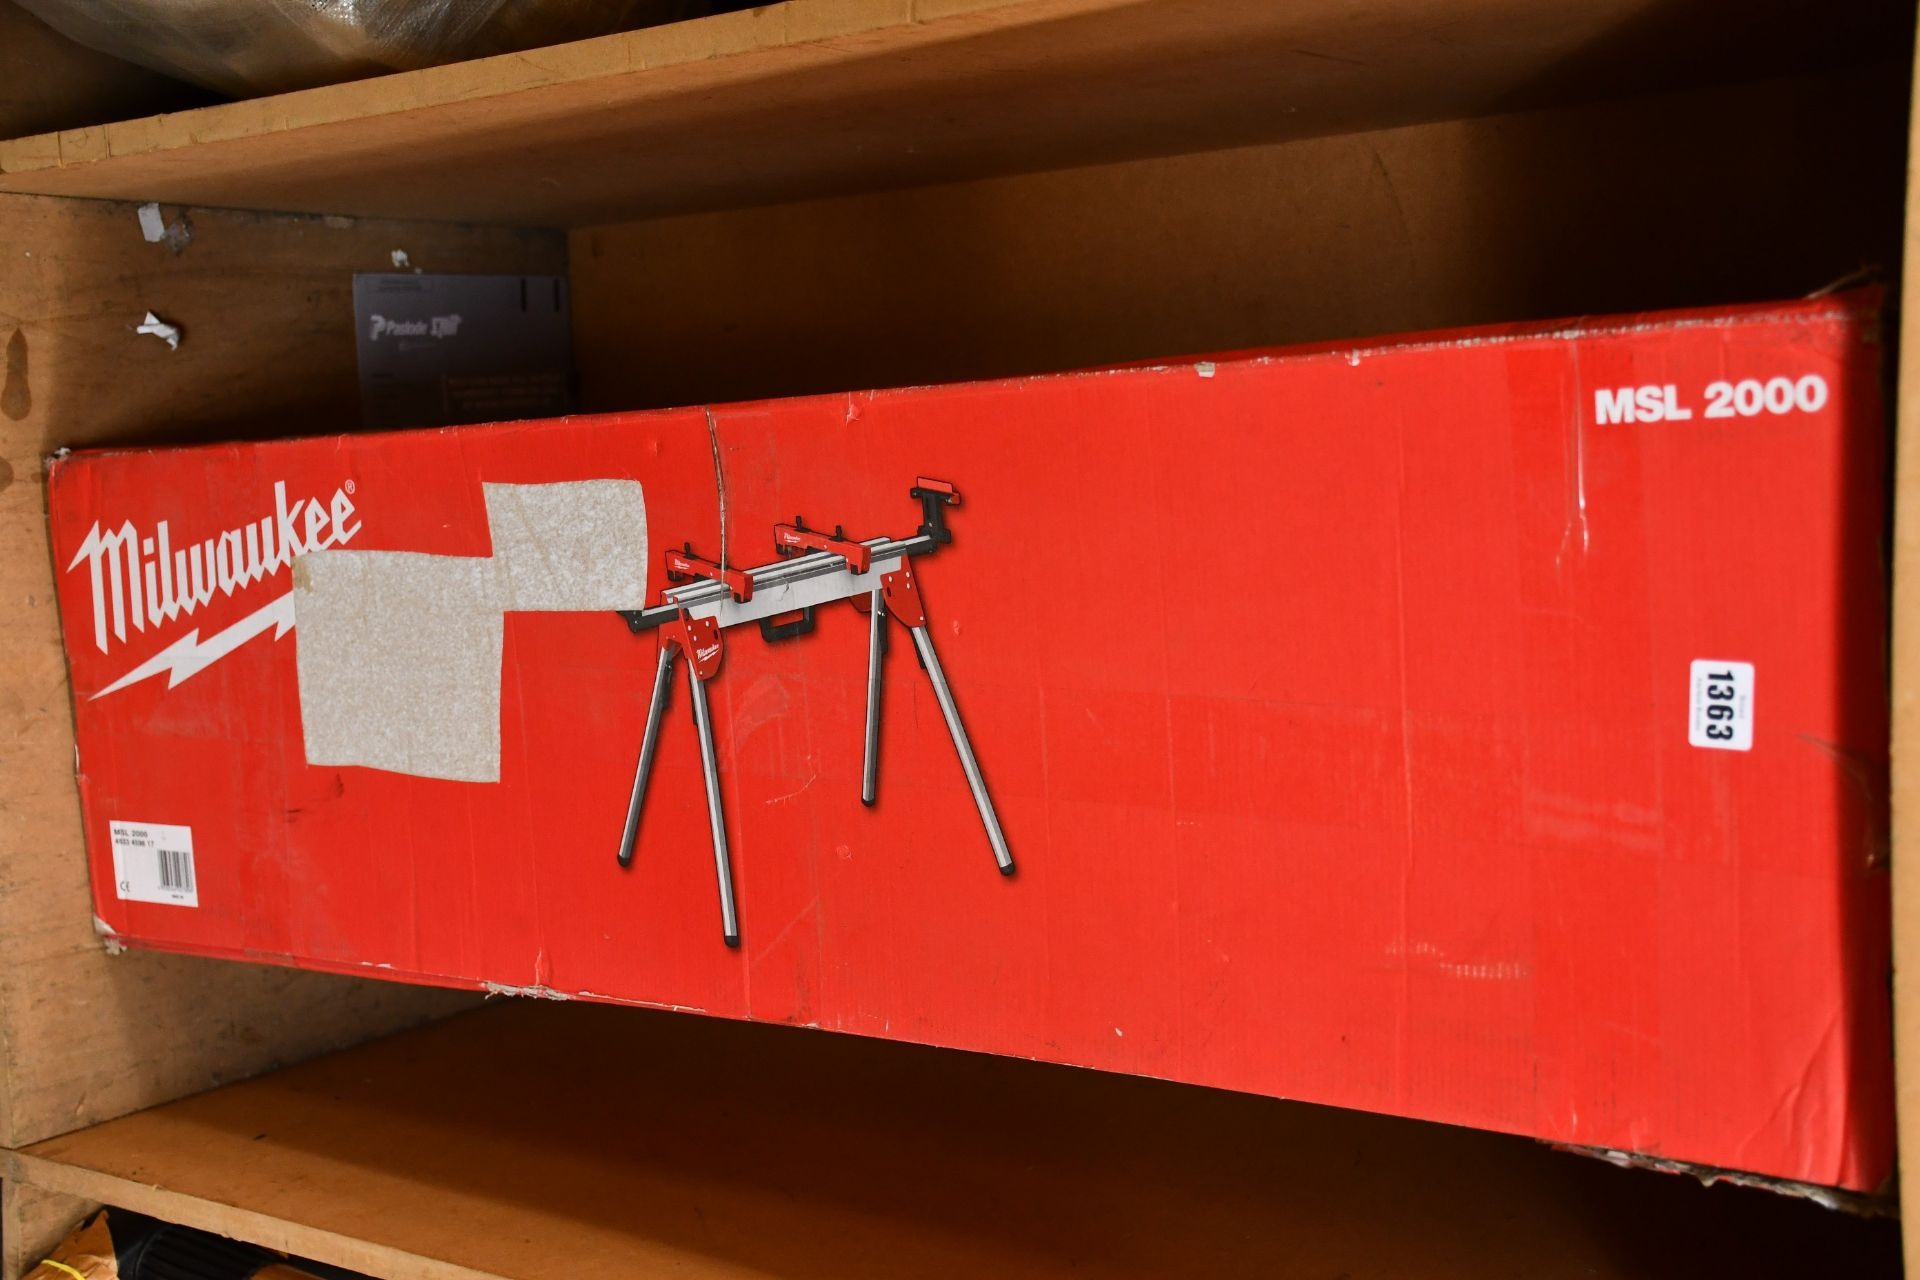 Lot 1363 - An as new Milwaukee MSL2000 mitre saw stand (Opened and damage to box).